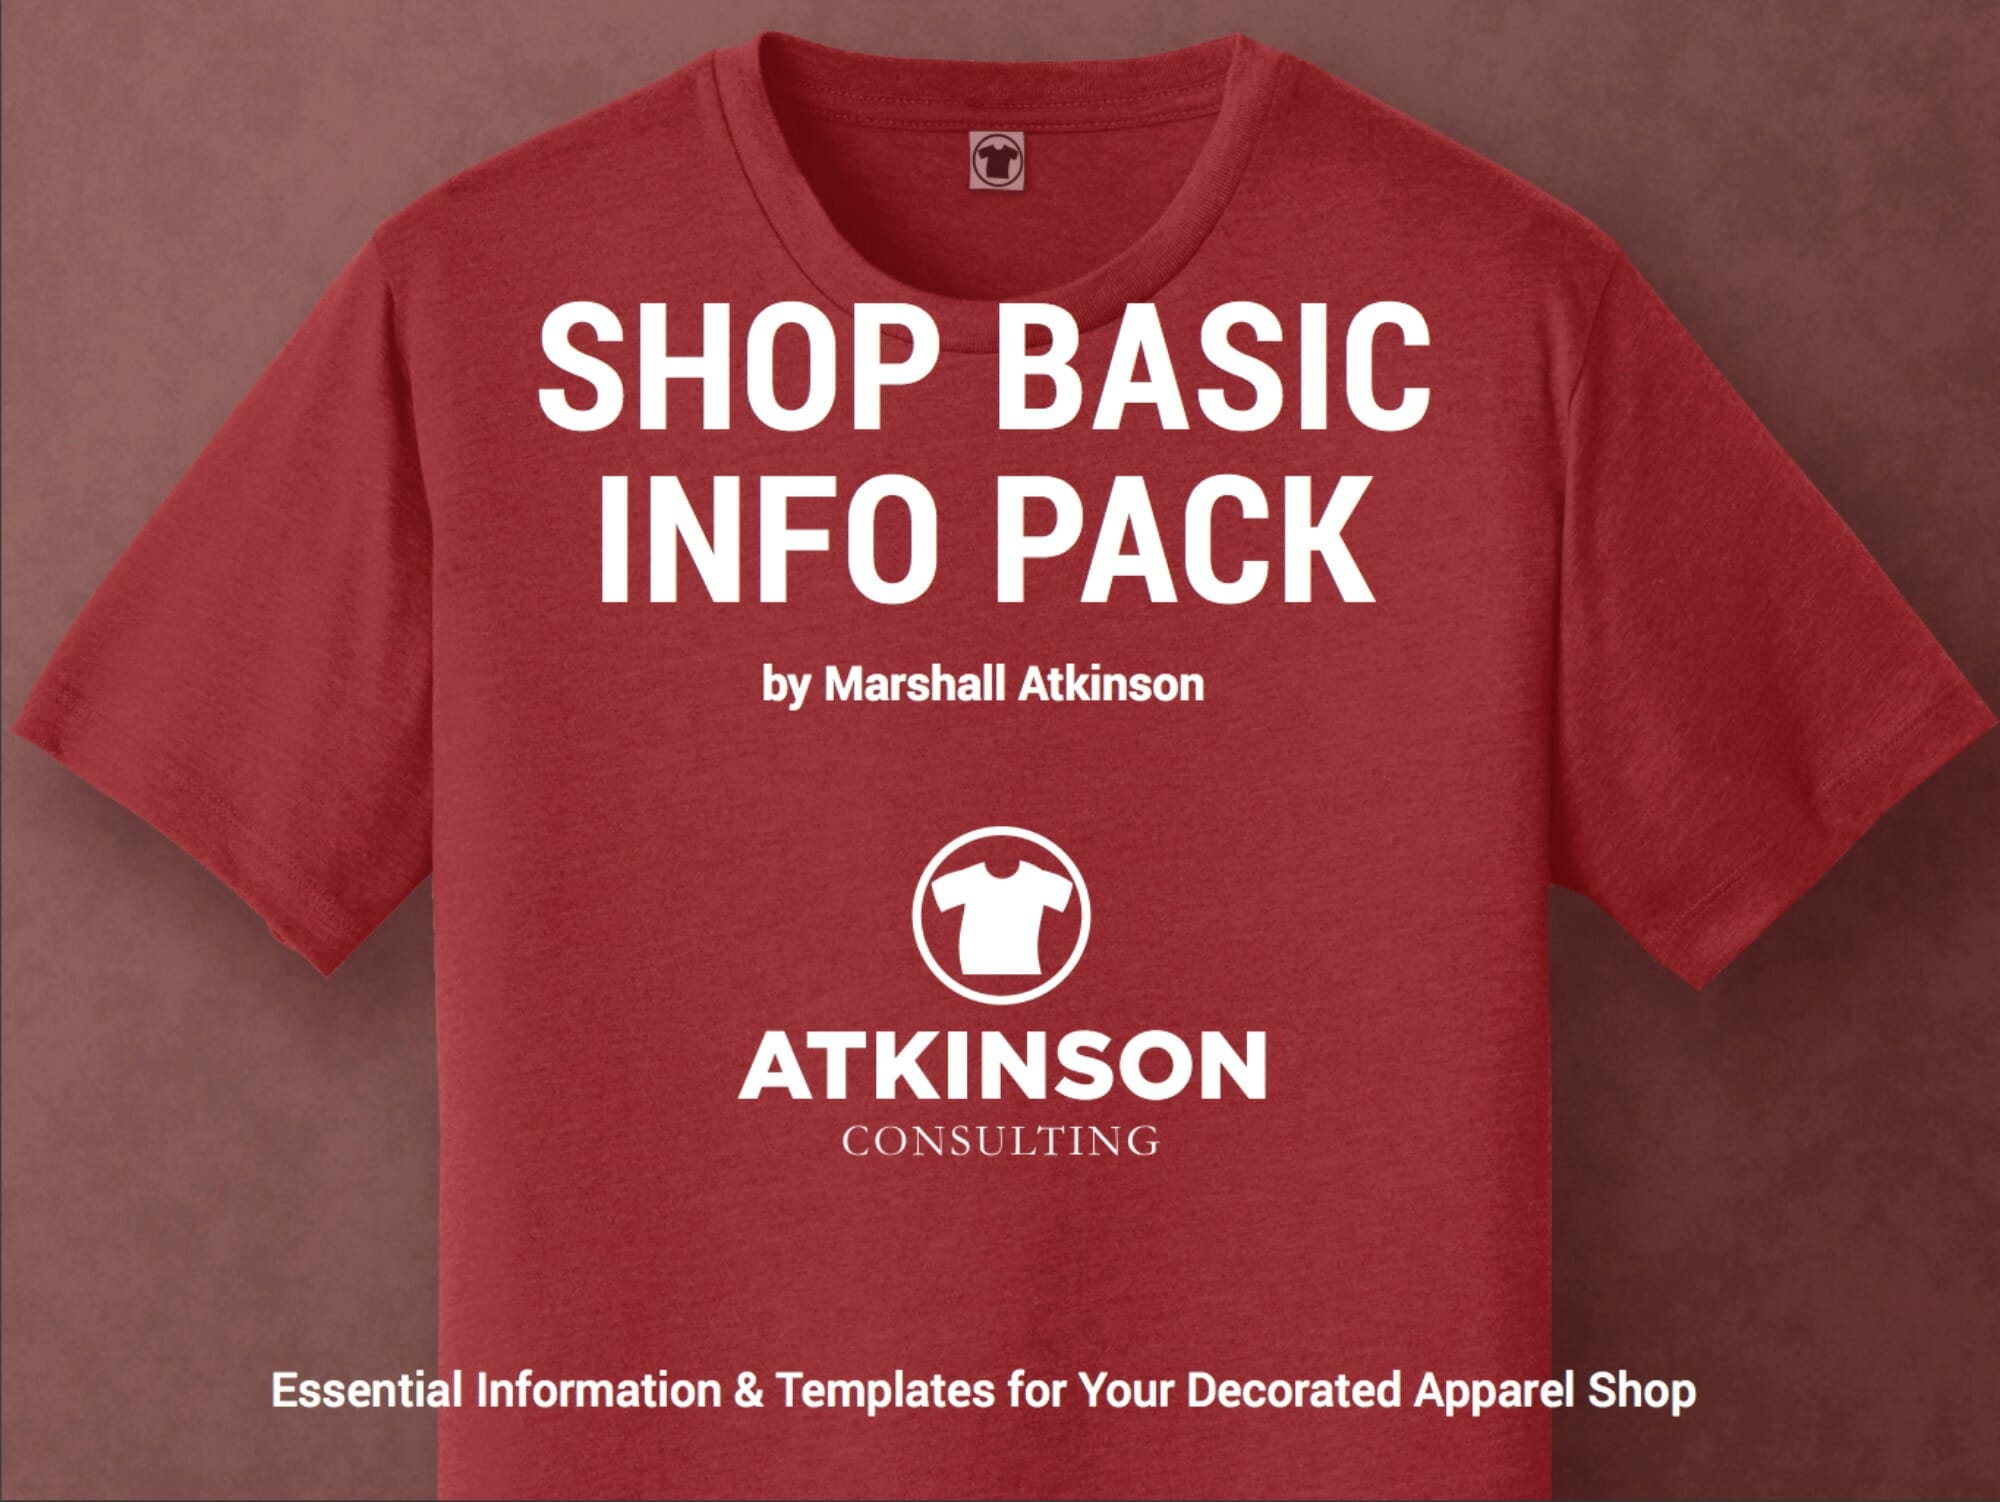 SHOP BASIC INFO PACK COVER